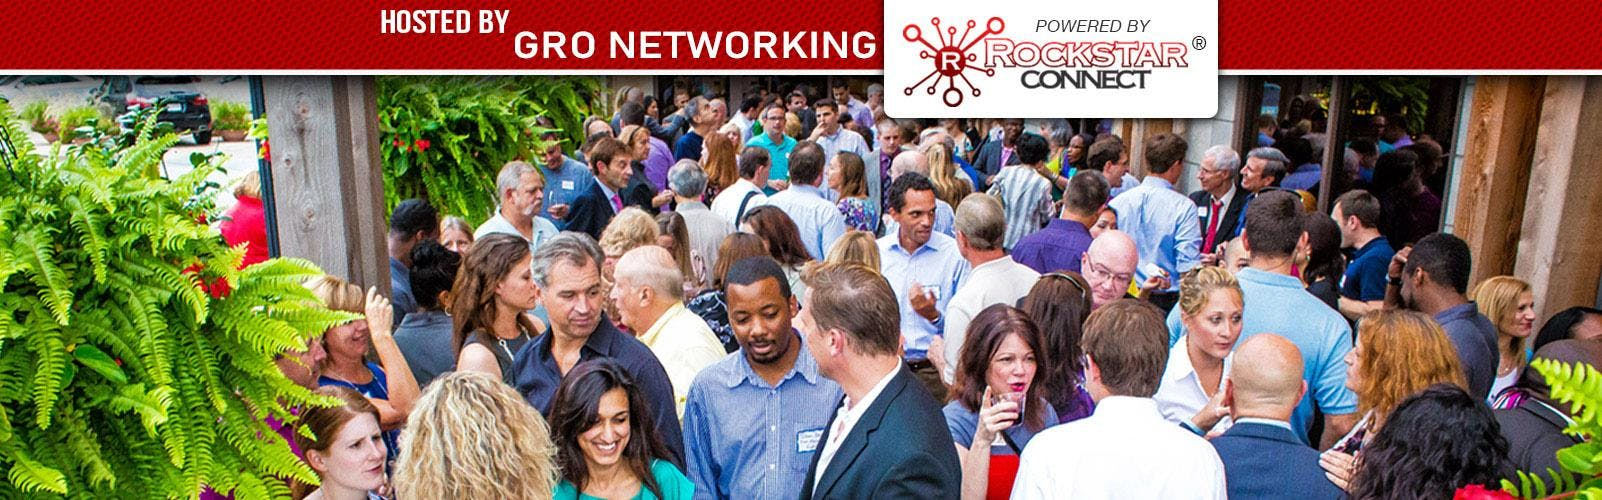 Free Brier Creek Rockstar Connect Networking Event (June, near Raleigh)